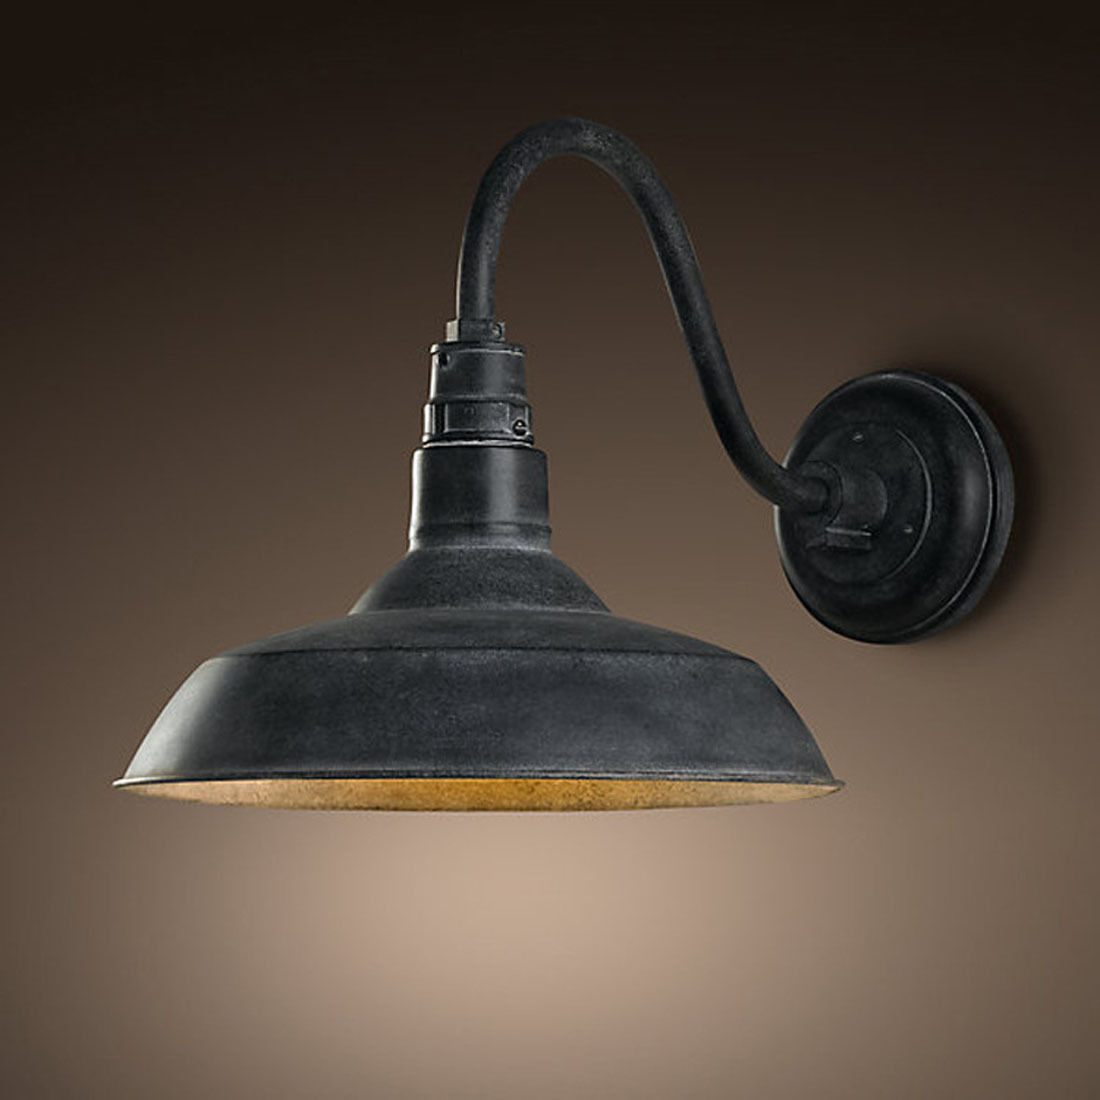 Retro Industrial Gooseneck Barn Wall Light Lamp Fixture Vintage Wall Sconce